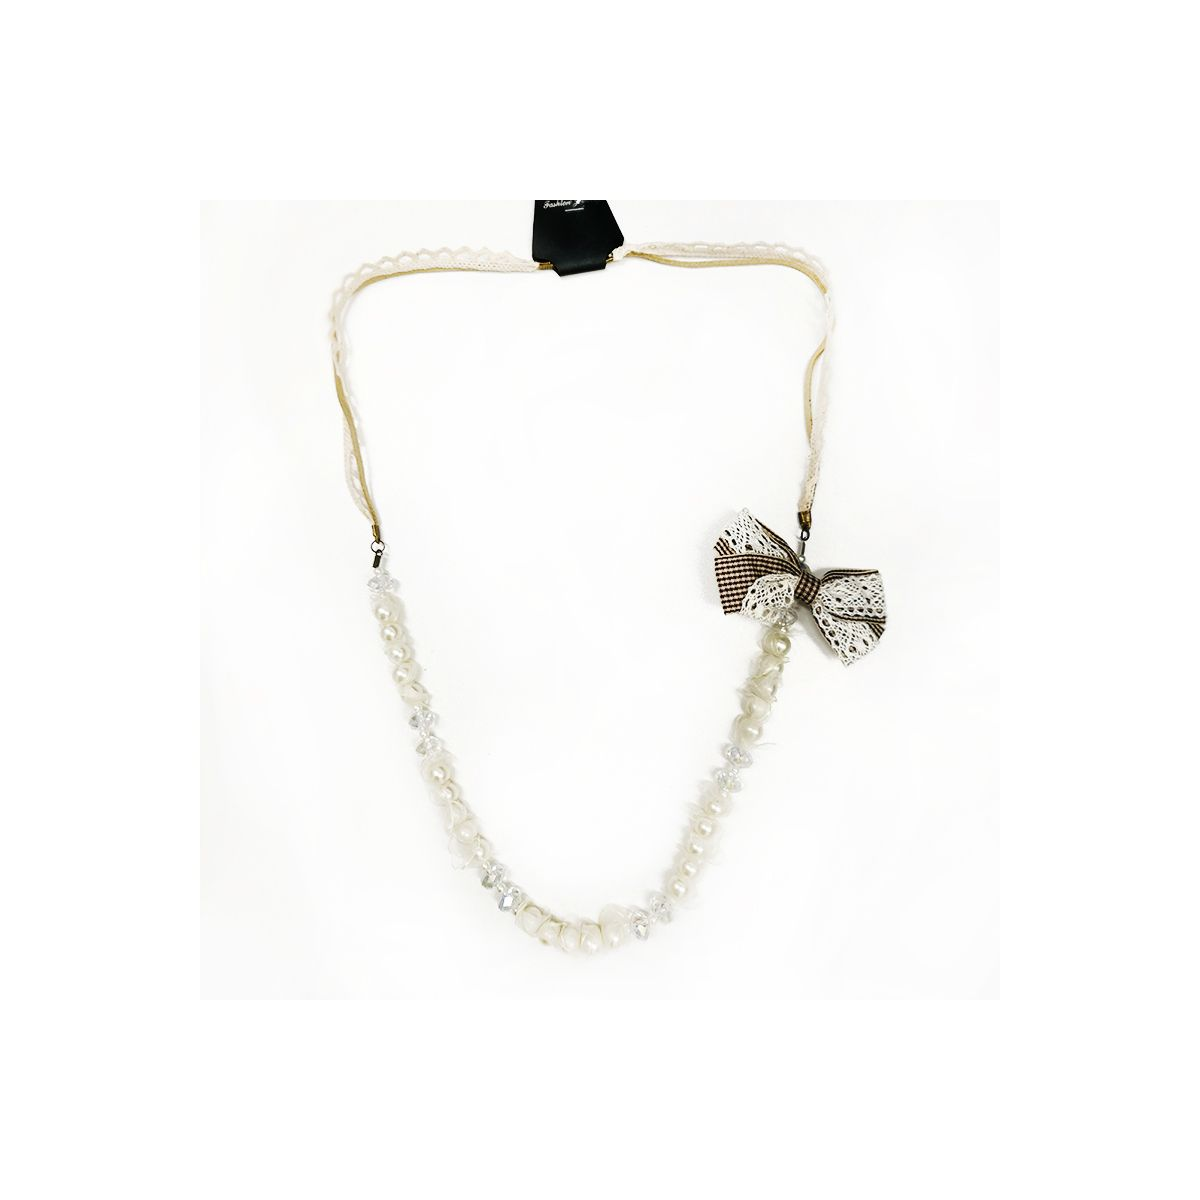 Beaded Pearl Long Necklace With Bow - White (OLD110124WT)